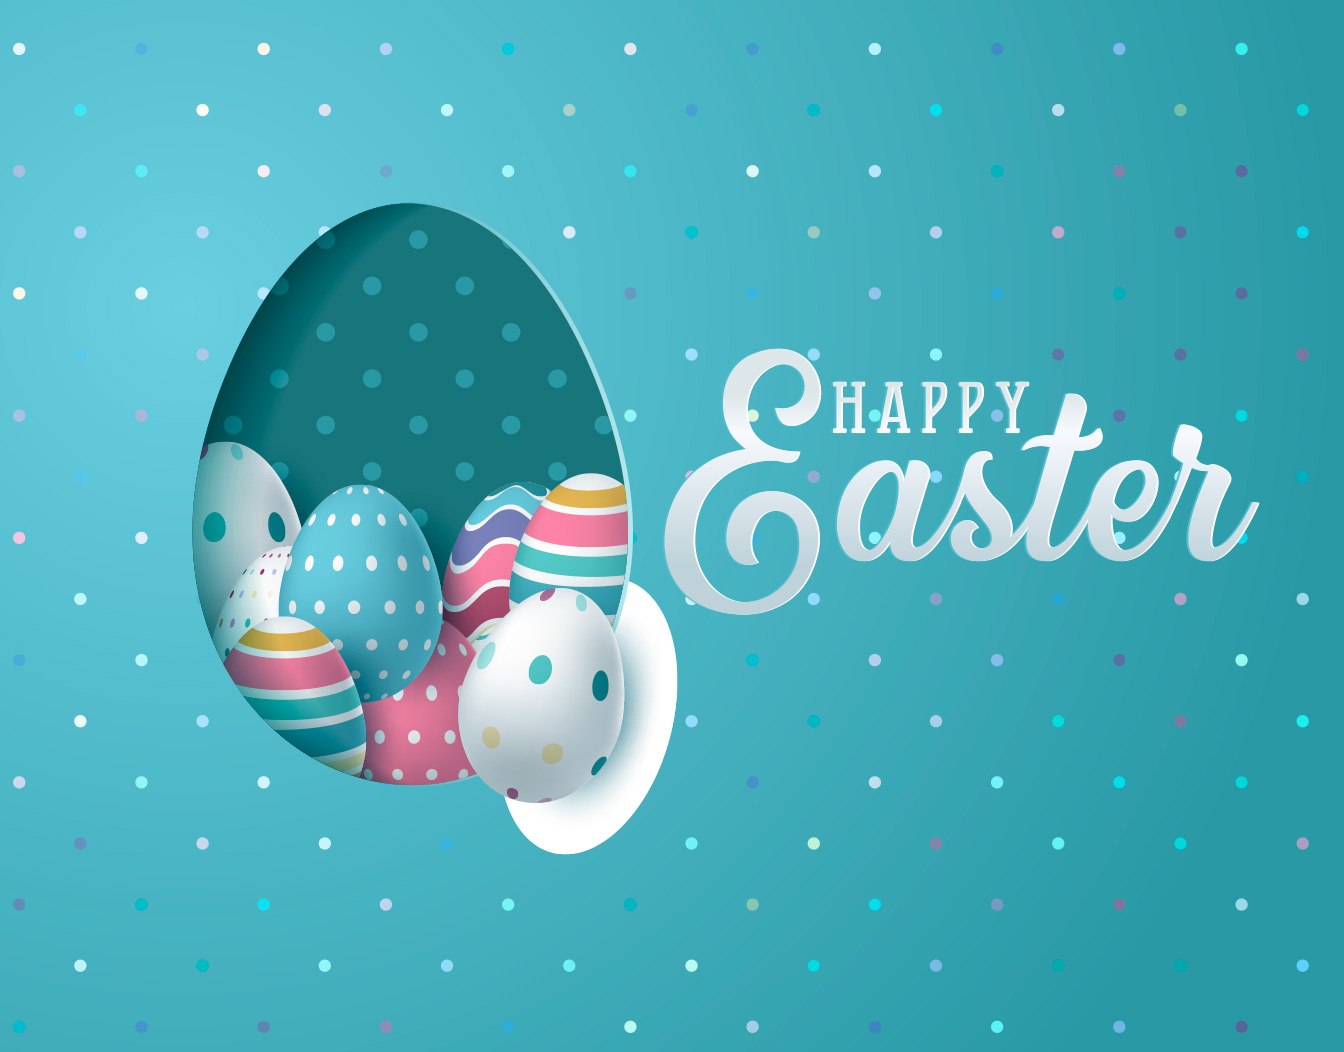 Happy Easter eggs on blue background